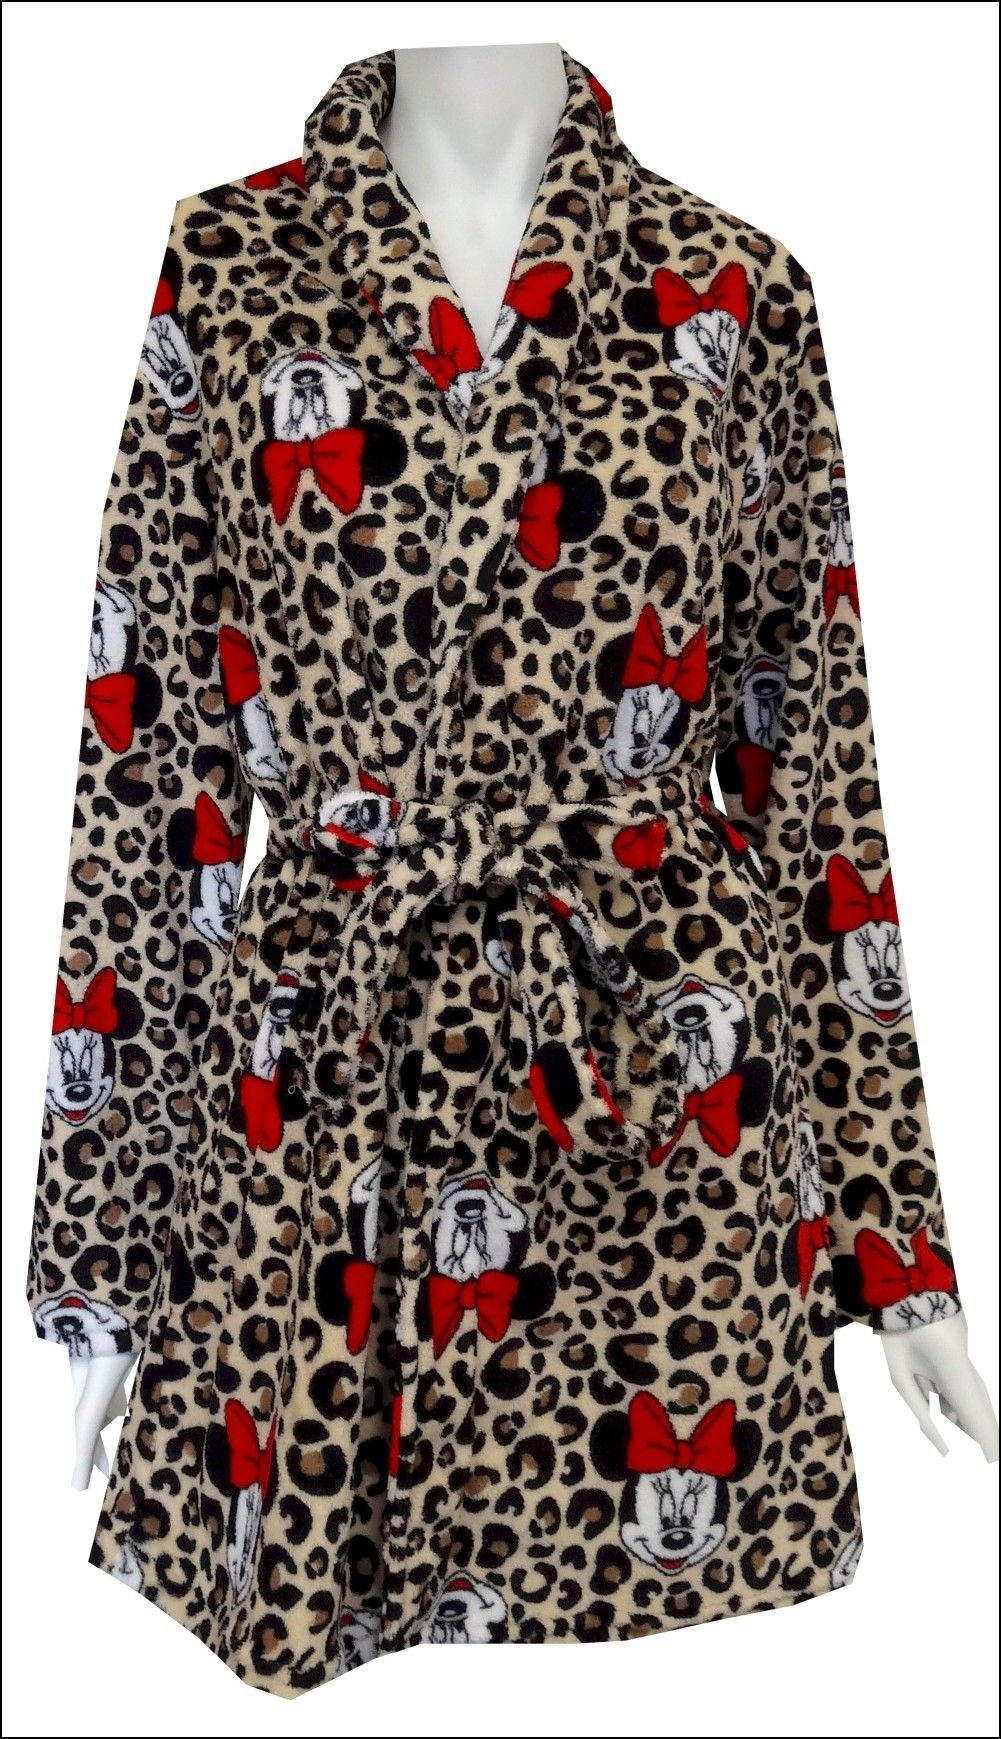 Minnie Mouse Dressing Gown Womens | Dresses and Gowns Ideas ...